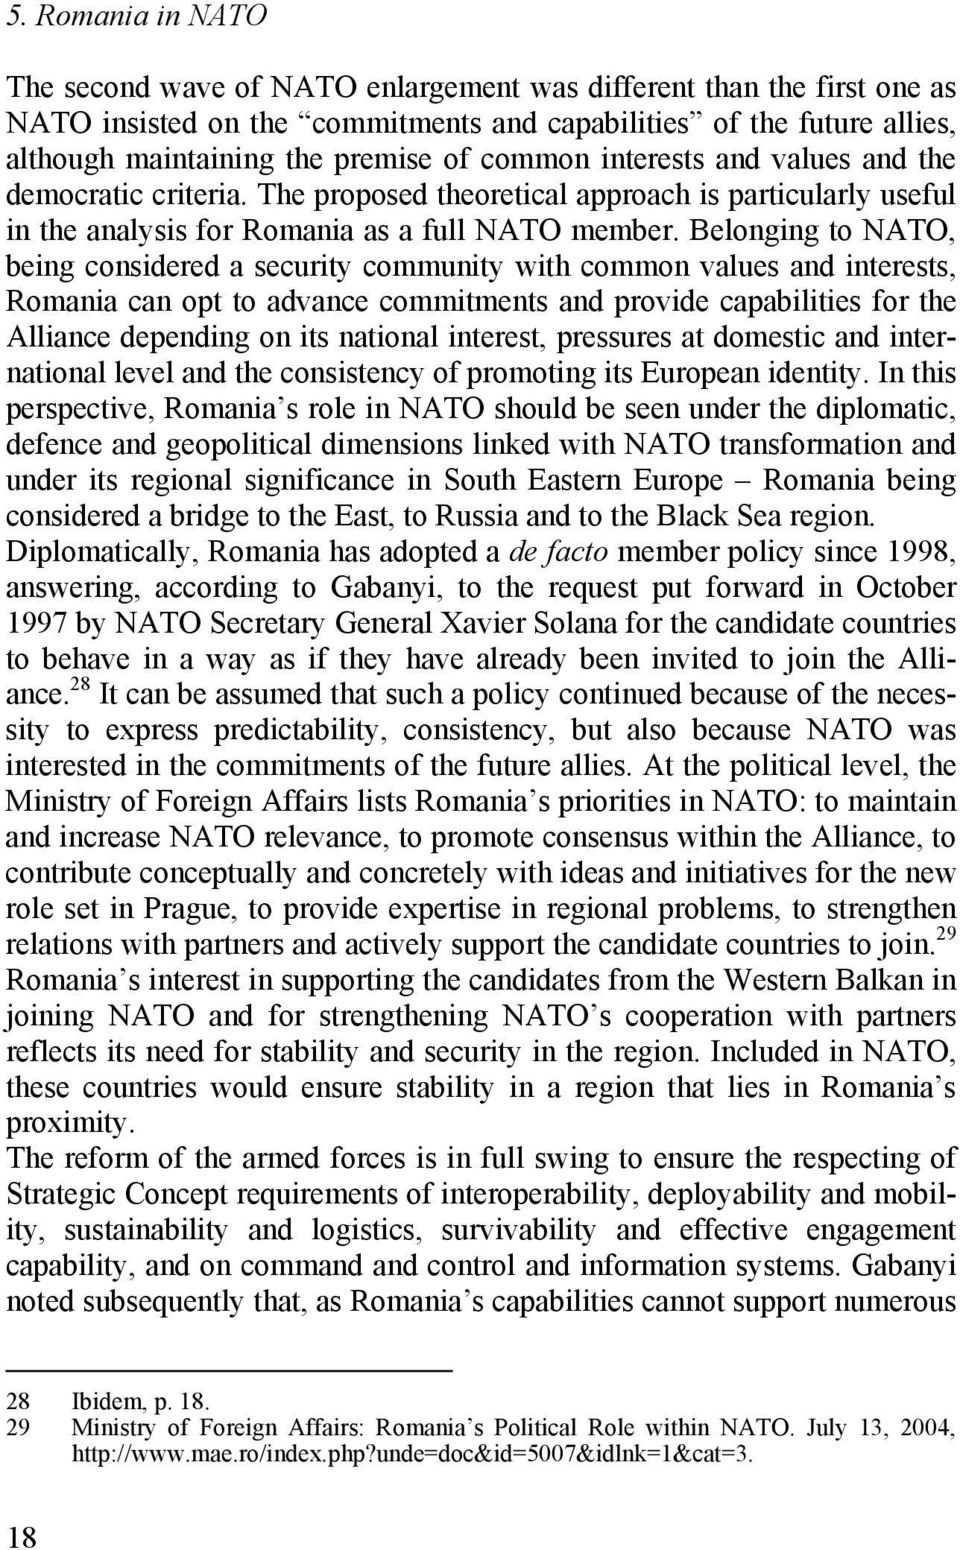 Belonging to NATO, being considered a security community with common values and interests, Romania can opt to advance commitments and provide capabilities for the Alliance depending on its national